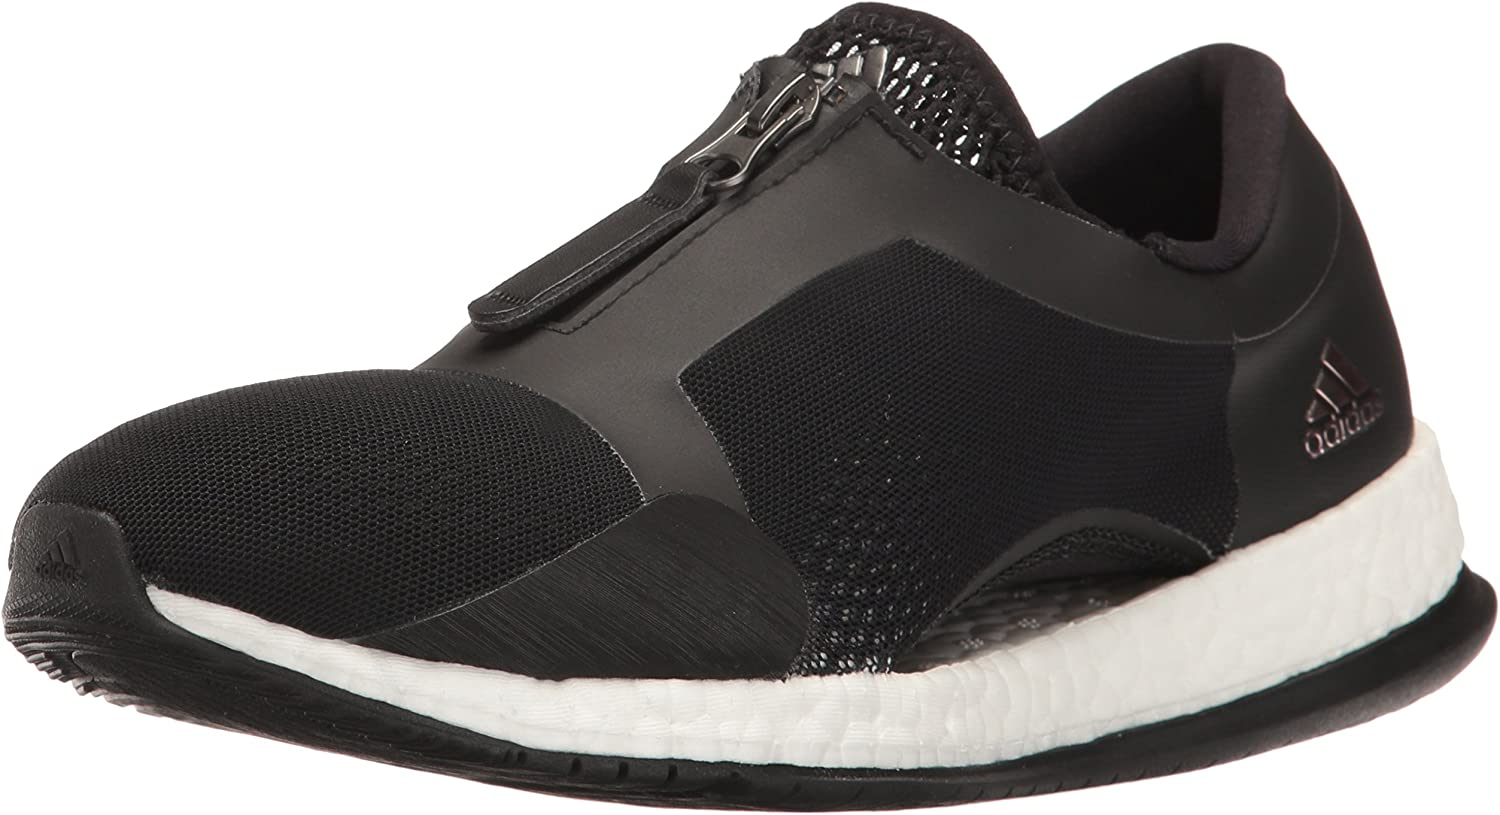 Adidas Women's Pure Boost X TR Zip Training shoes